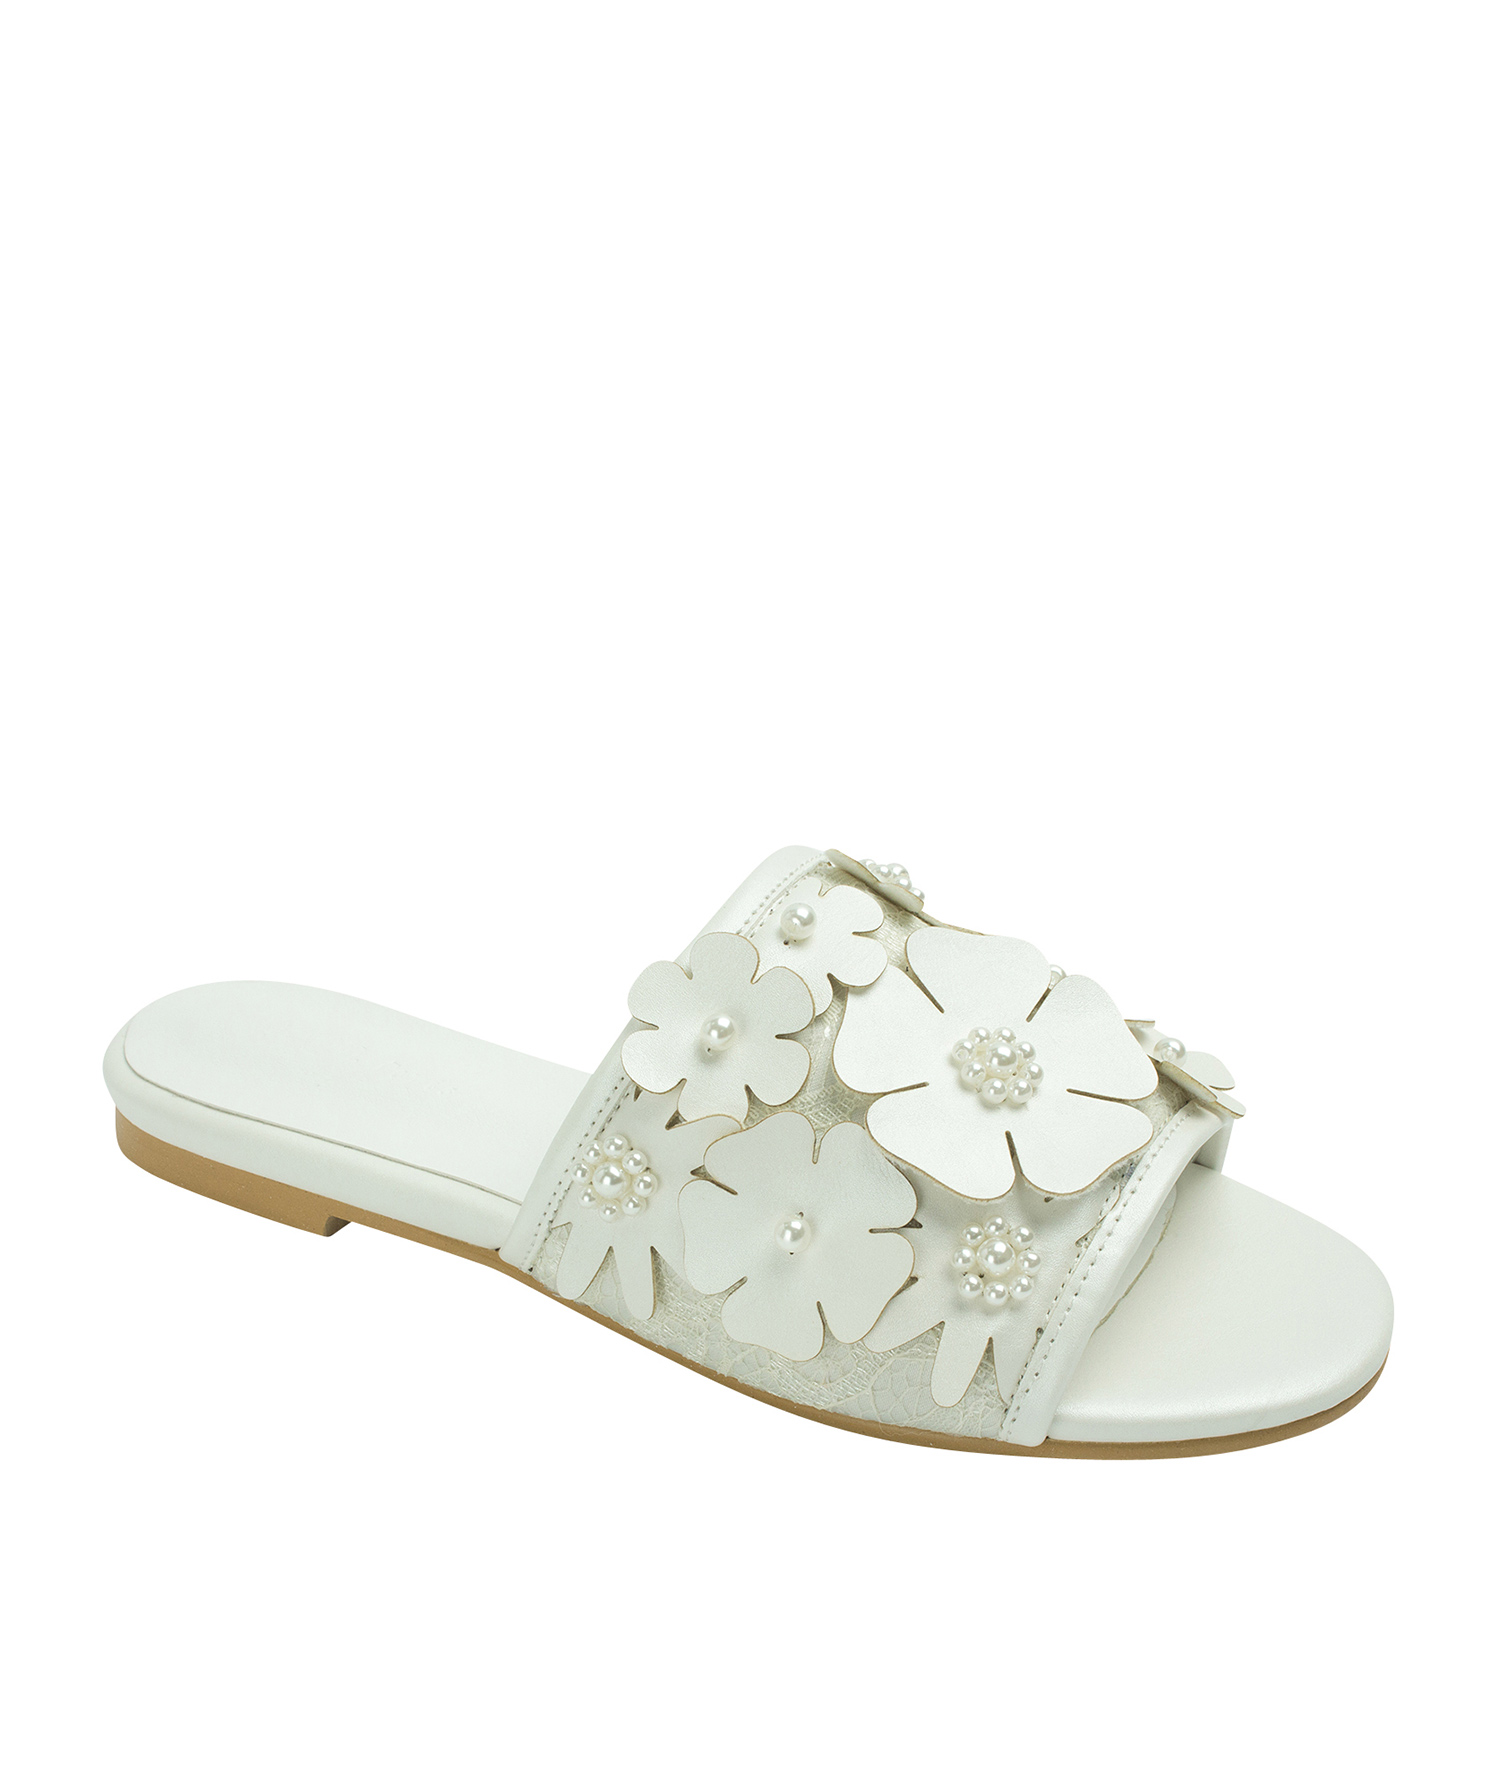 62fa10e9ce0c Annakastle Womens Beads Flower Embellished Sandals White